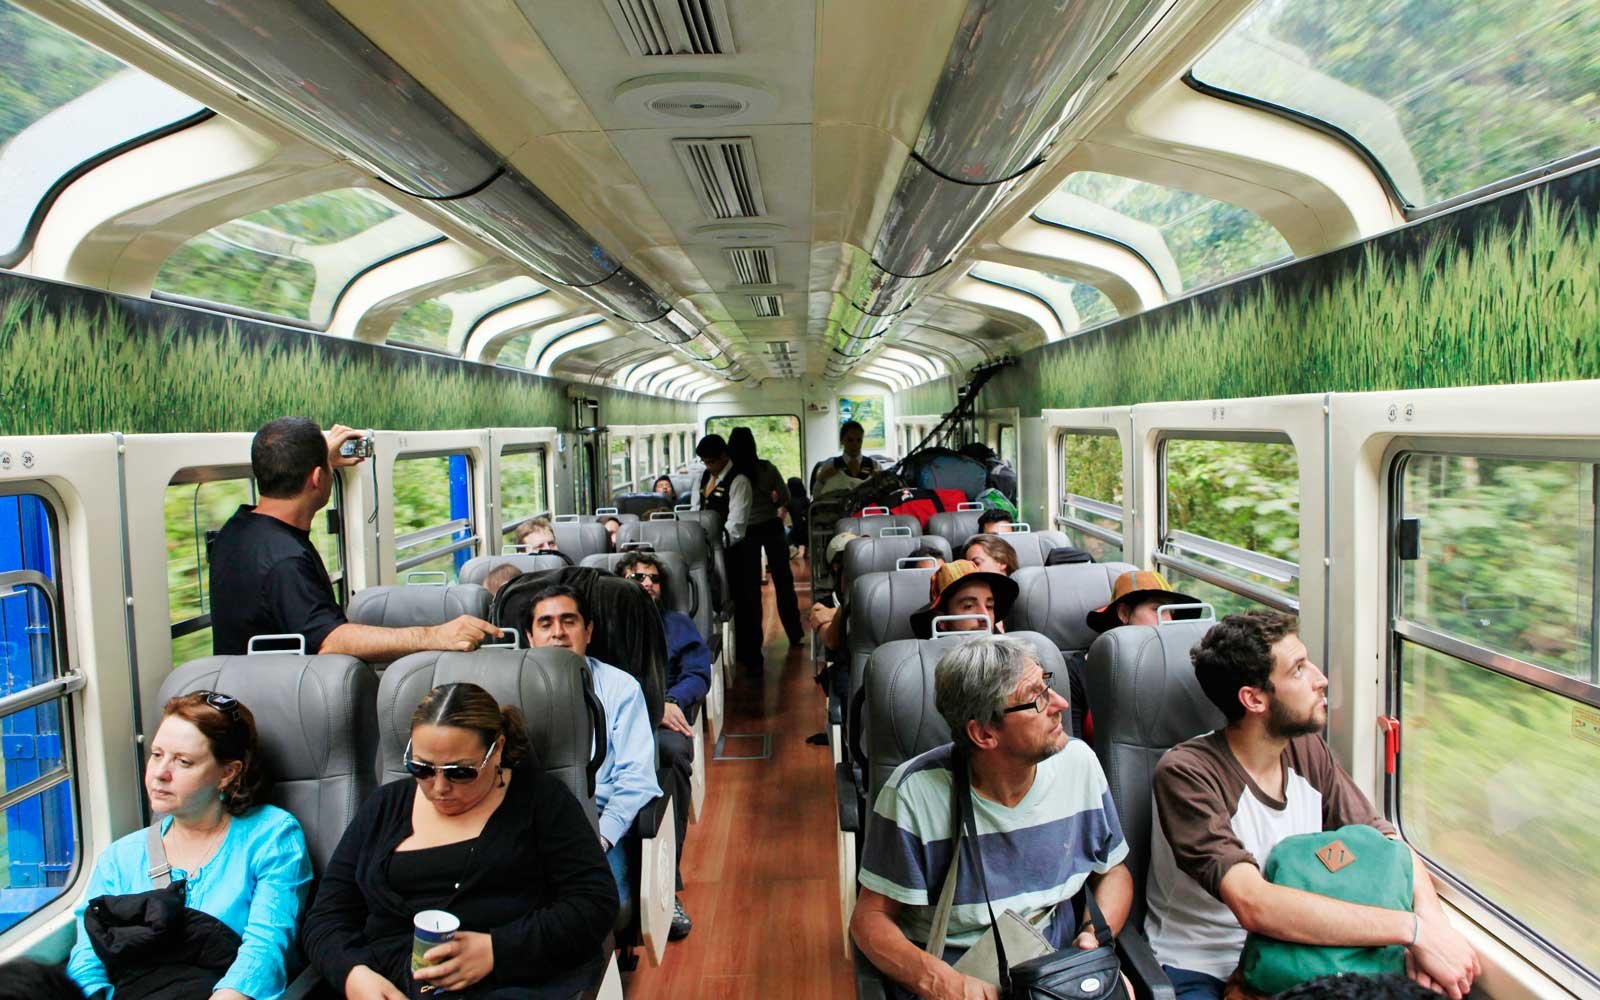 Tourists en route to Machu Picchu admire the scenery through panoramic windows of the Vistadome train